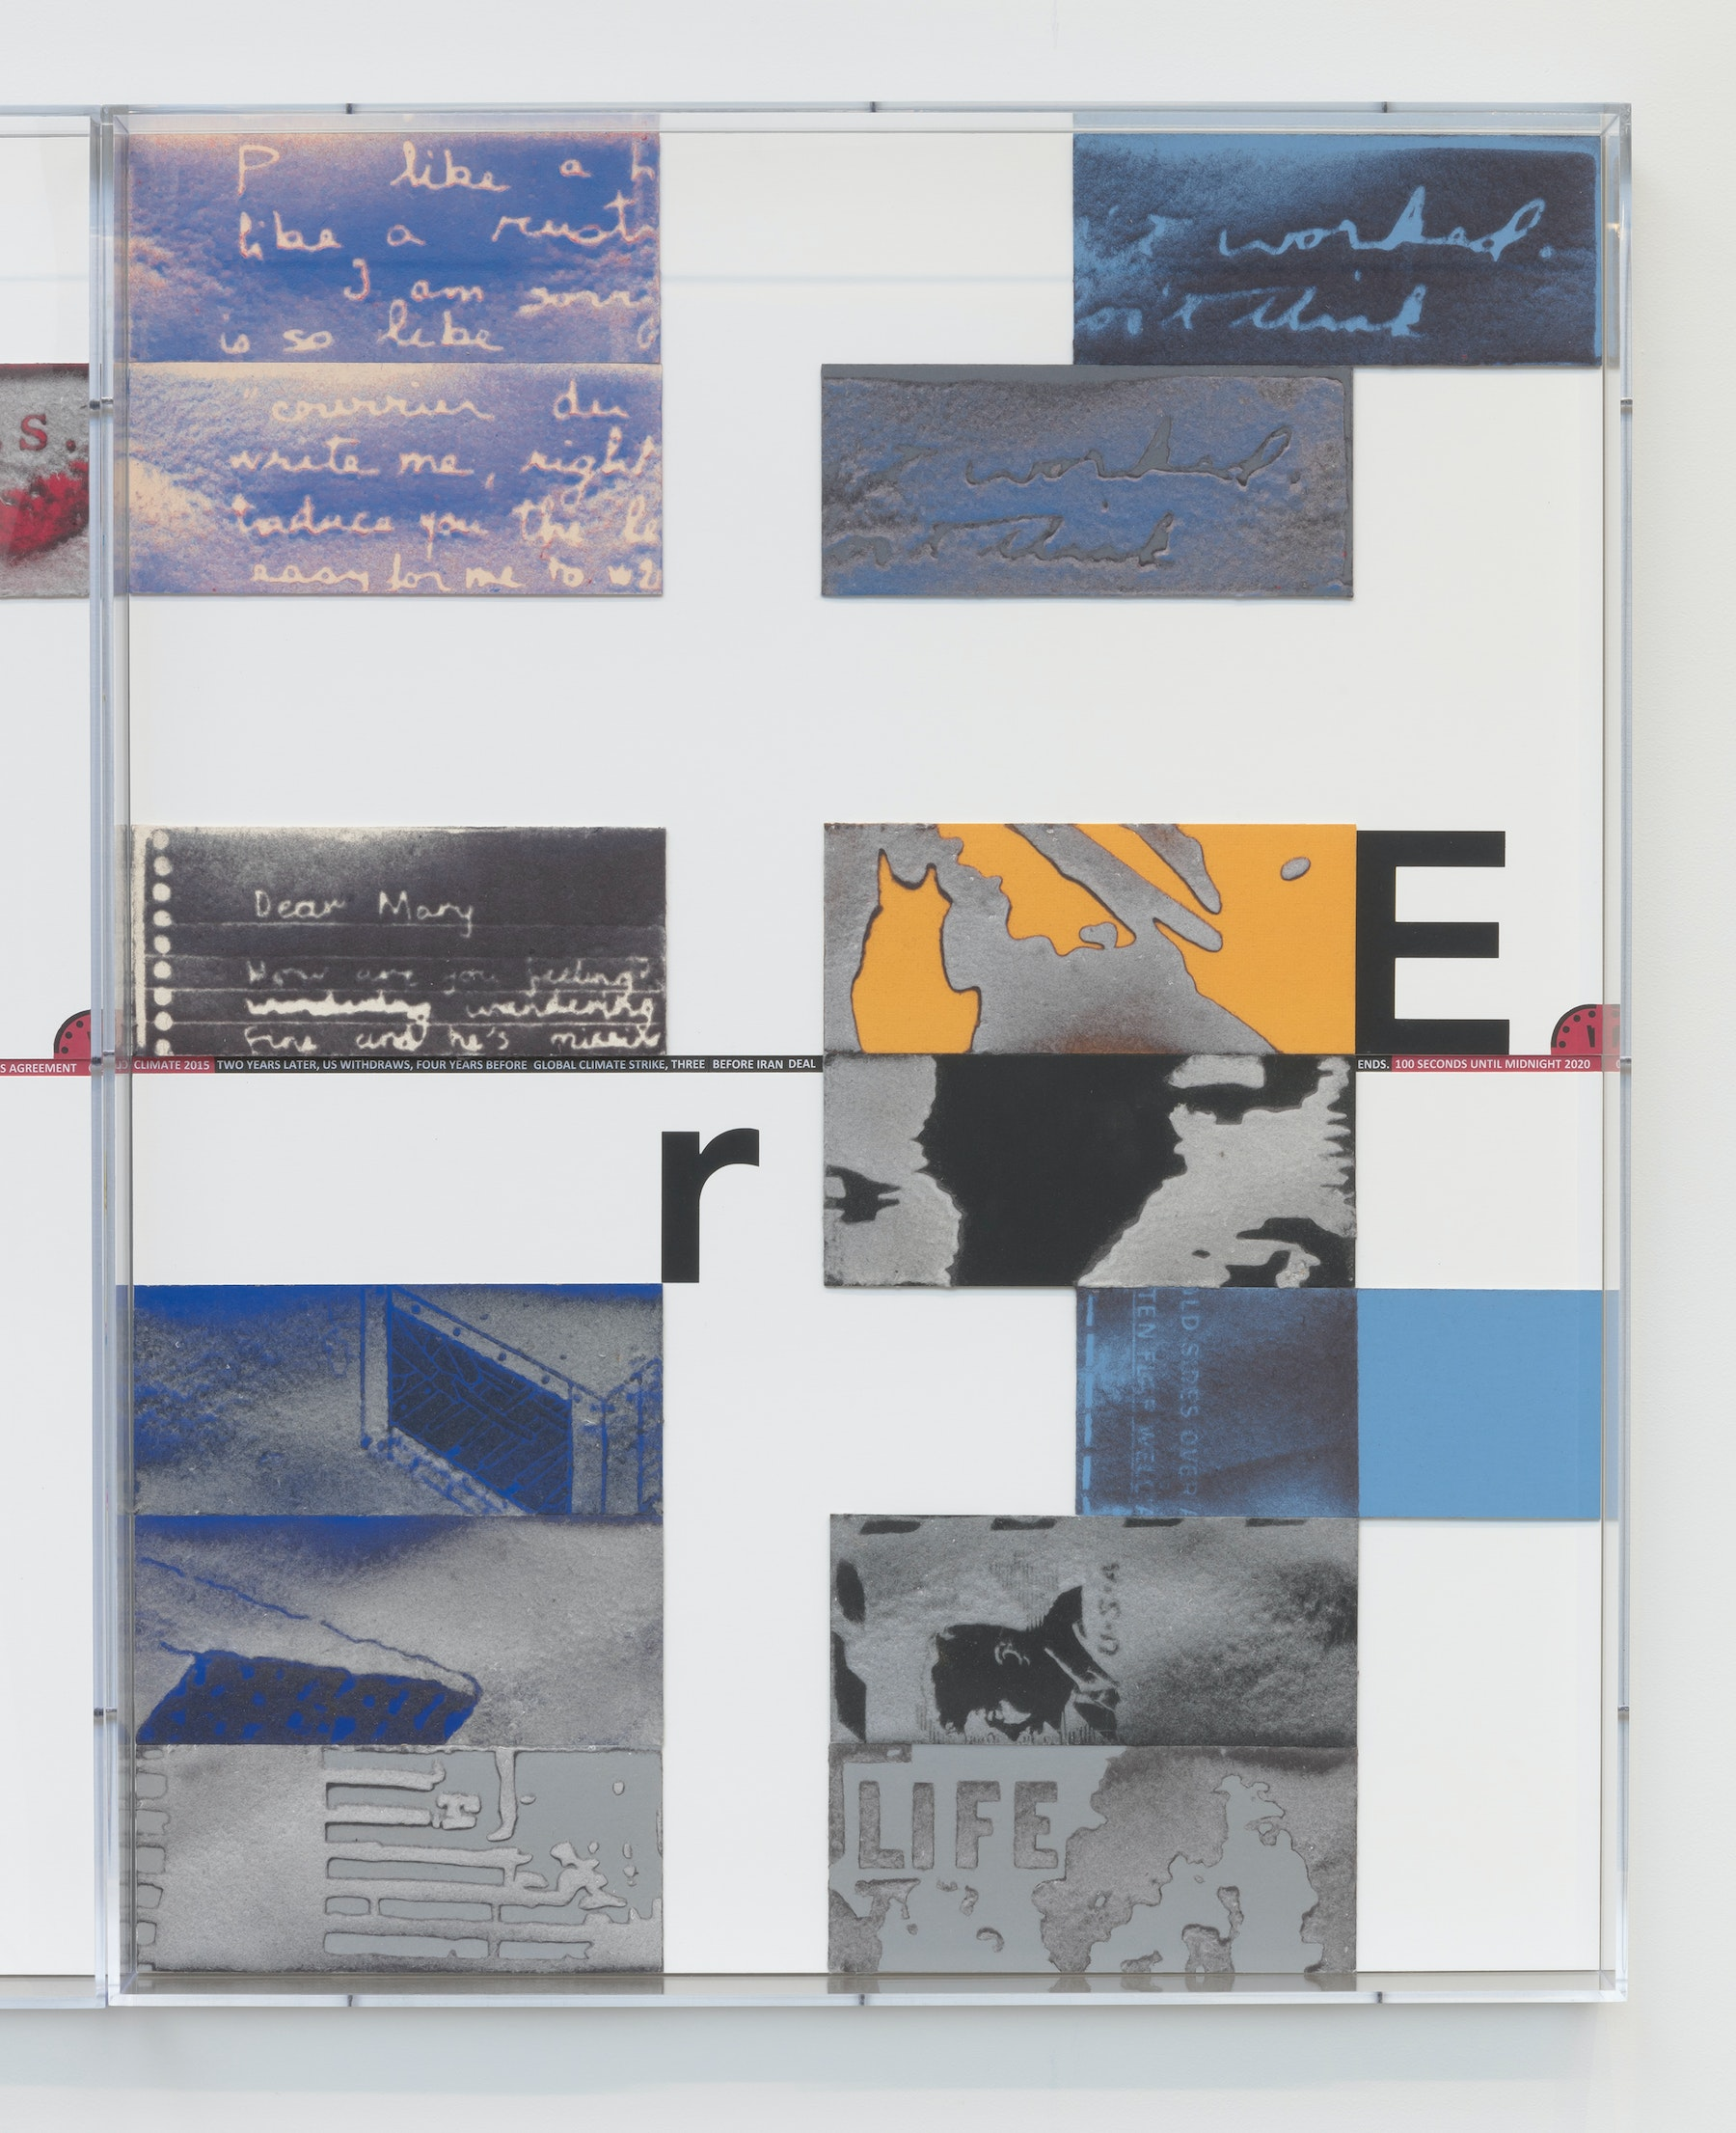 "Mary Kelly ""World on Fire Timeline,"" 2020 Compressed lint, archival mount board, paper, ink, acrylic box frames 40.5 x 32.5 x 3.25"" [HxWxD] (102.87 x 82.55 x 8.25 cm) 6 parts, 40.5 x 195 x 3.25"" [HxWxD] (102.87 x 495.3 x 8.25 cm) overall Inventory #KEL164 Photo credit: Robert Wedemeyer"